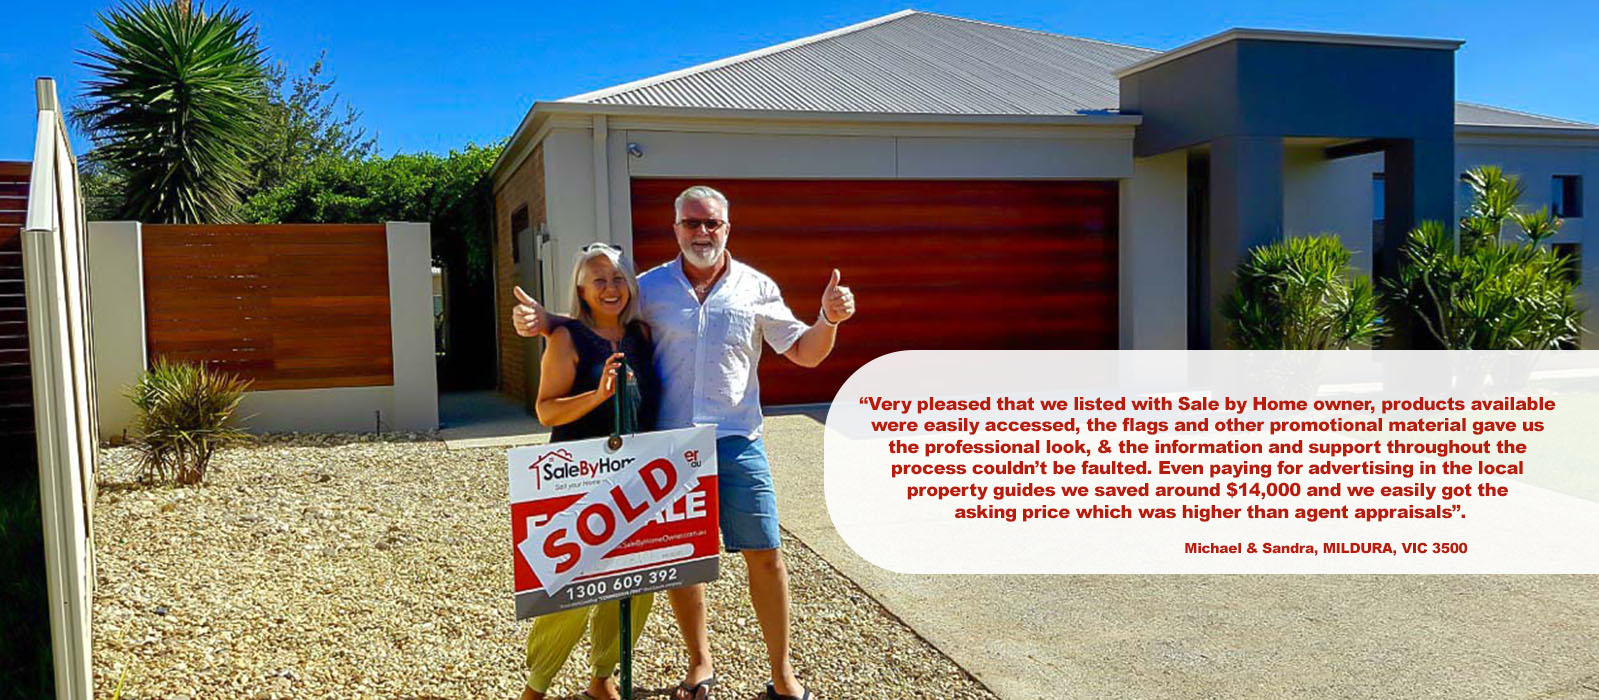 House For Sale By Owner testimonial